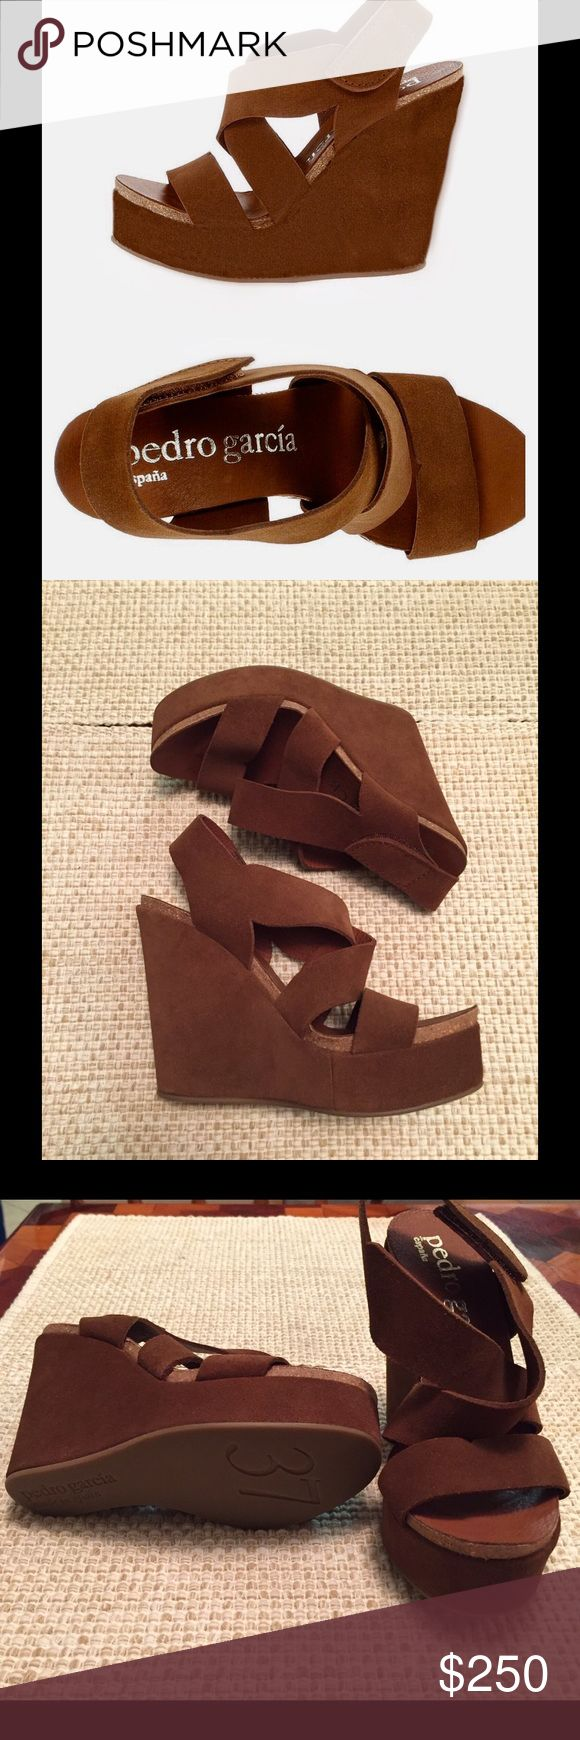 """Pedro Garcia Trina Wedge Sandals Pedro Garcia  """"Trina"""" wedge sandals in tobacco castoro. Sling back with grip-strap closure. Suede upper, leather lining and synthetic sole. Made in Spain. Roughly 5"""" heel height. Pedro Garcia Shoes Wedges"""